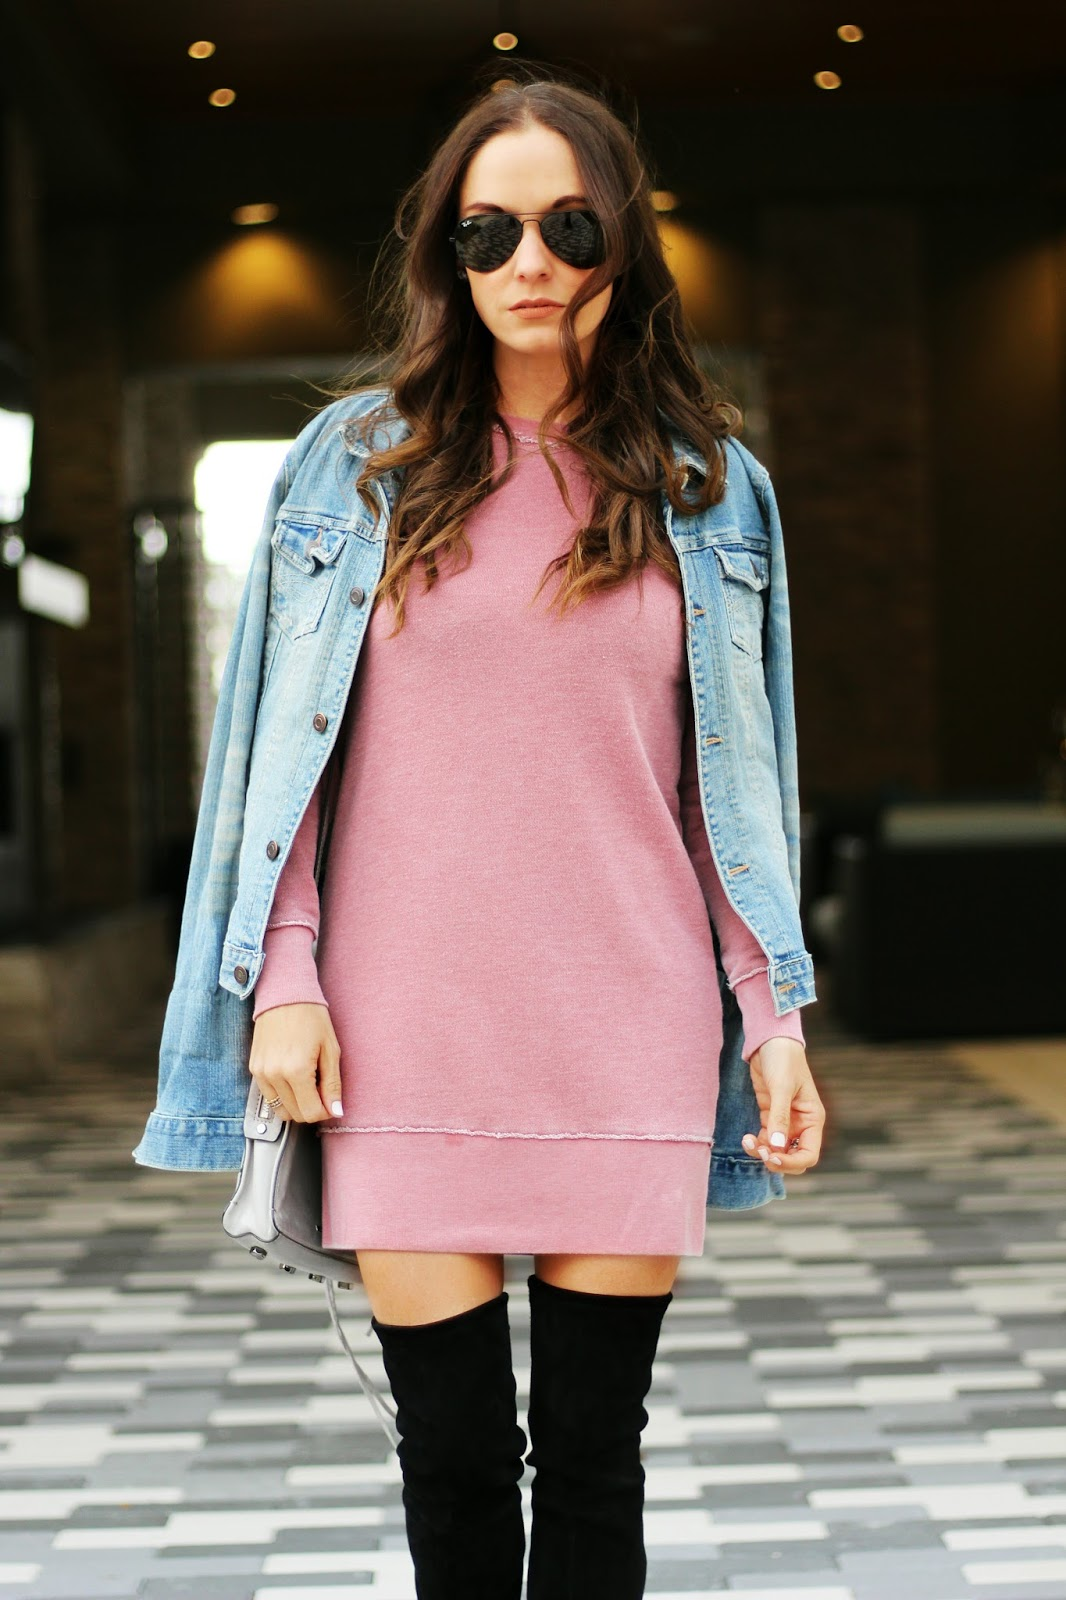 Sweatshirt Dress outfit